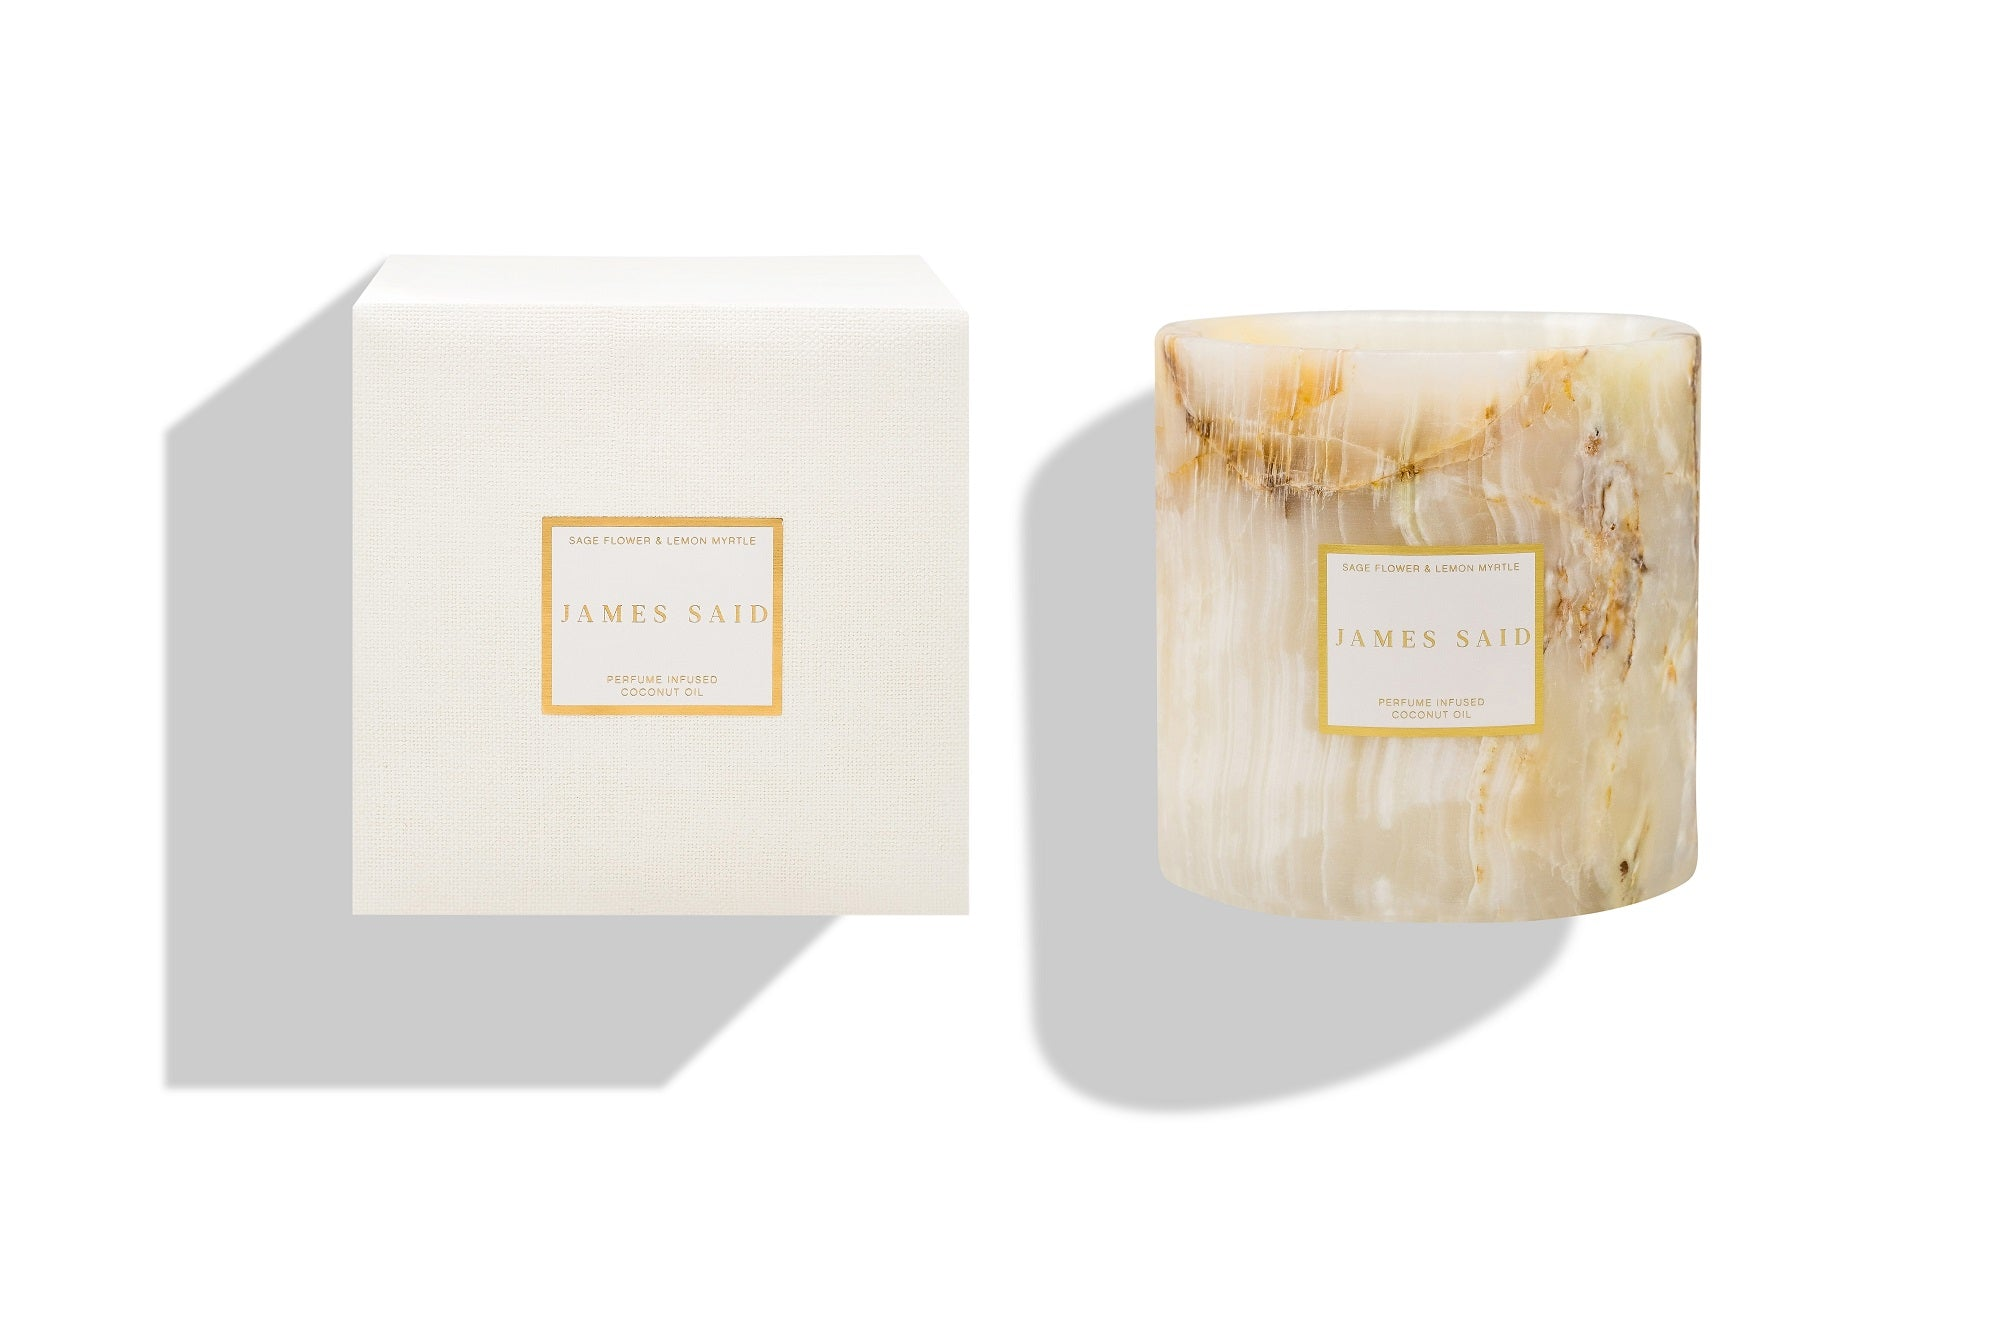 James Said Sage Flower & Lemon Myrtle Onyx Alabaster Candle - 1250g